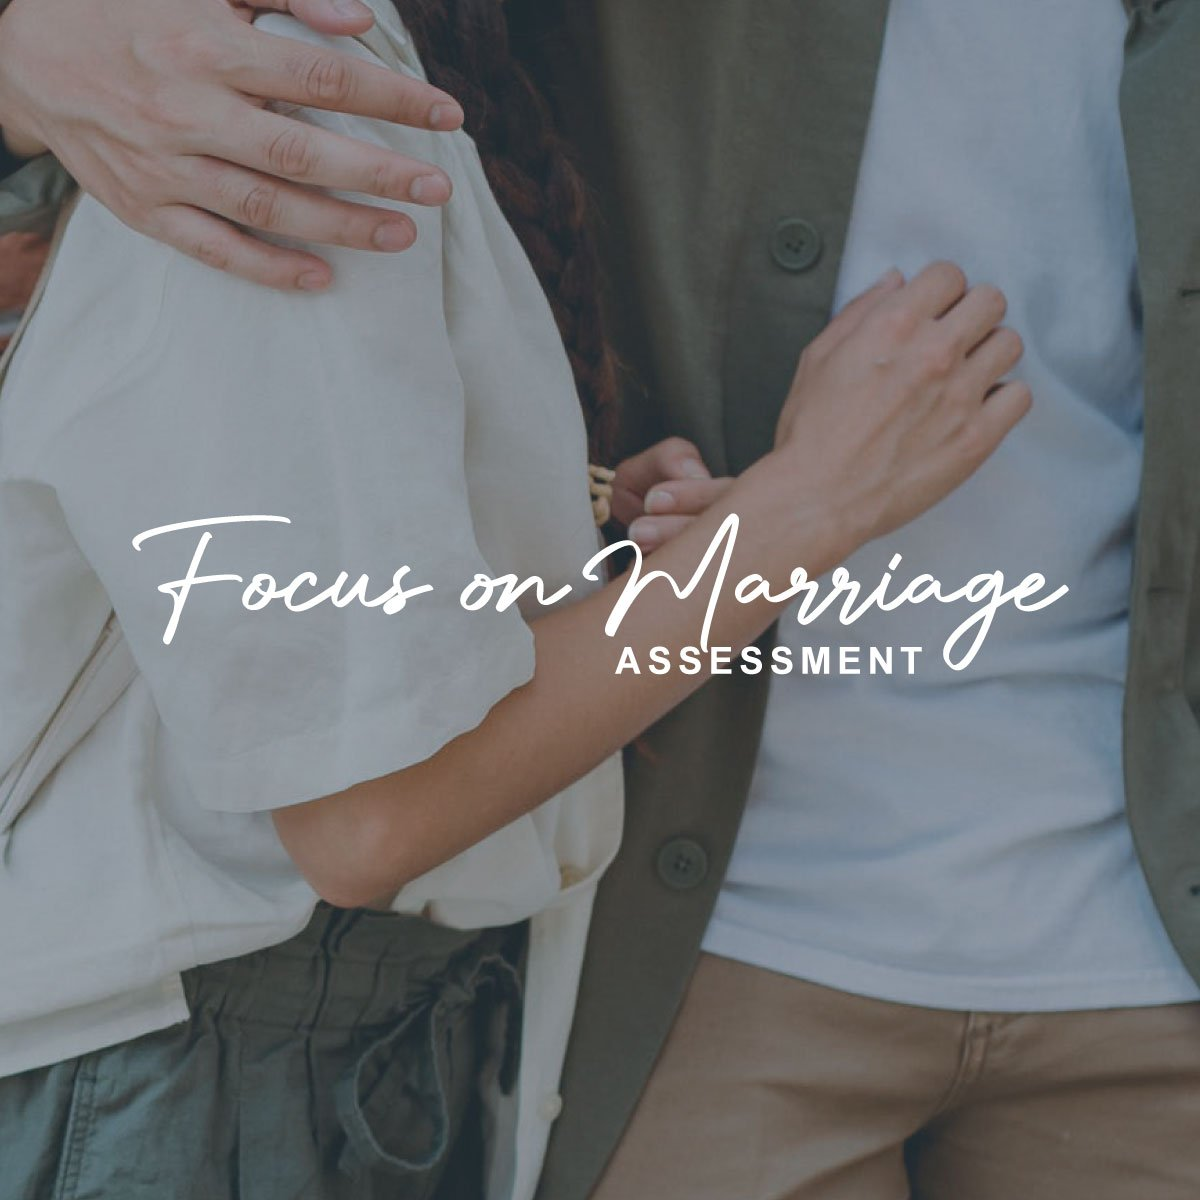 Focus on Marriage Assessment